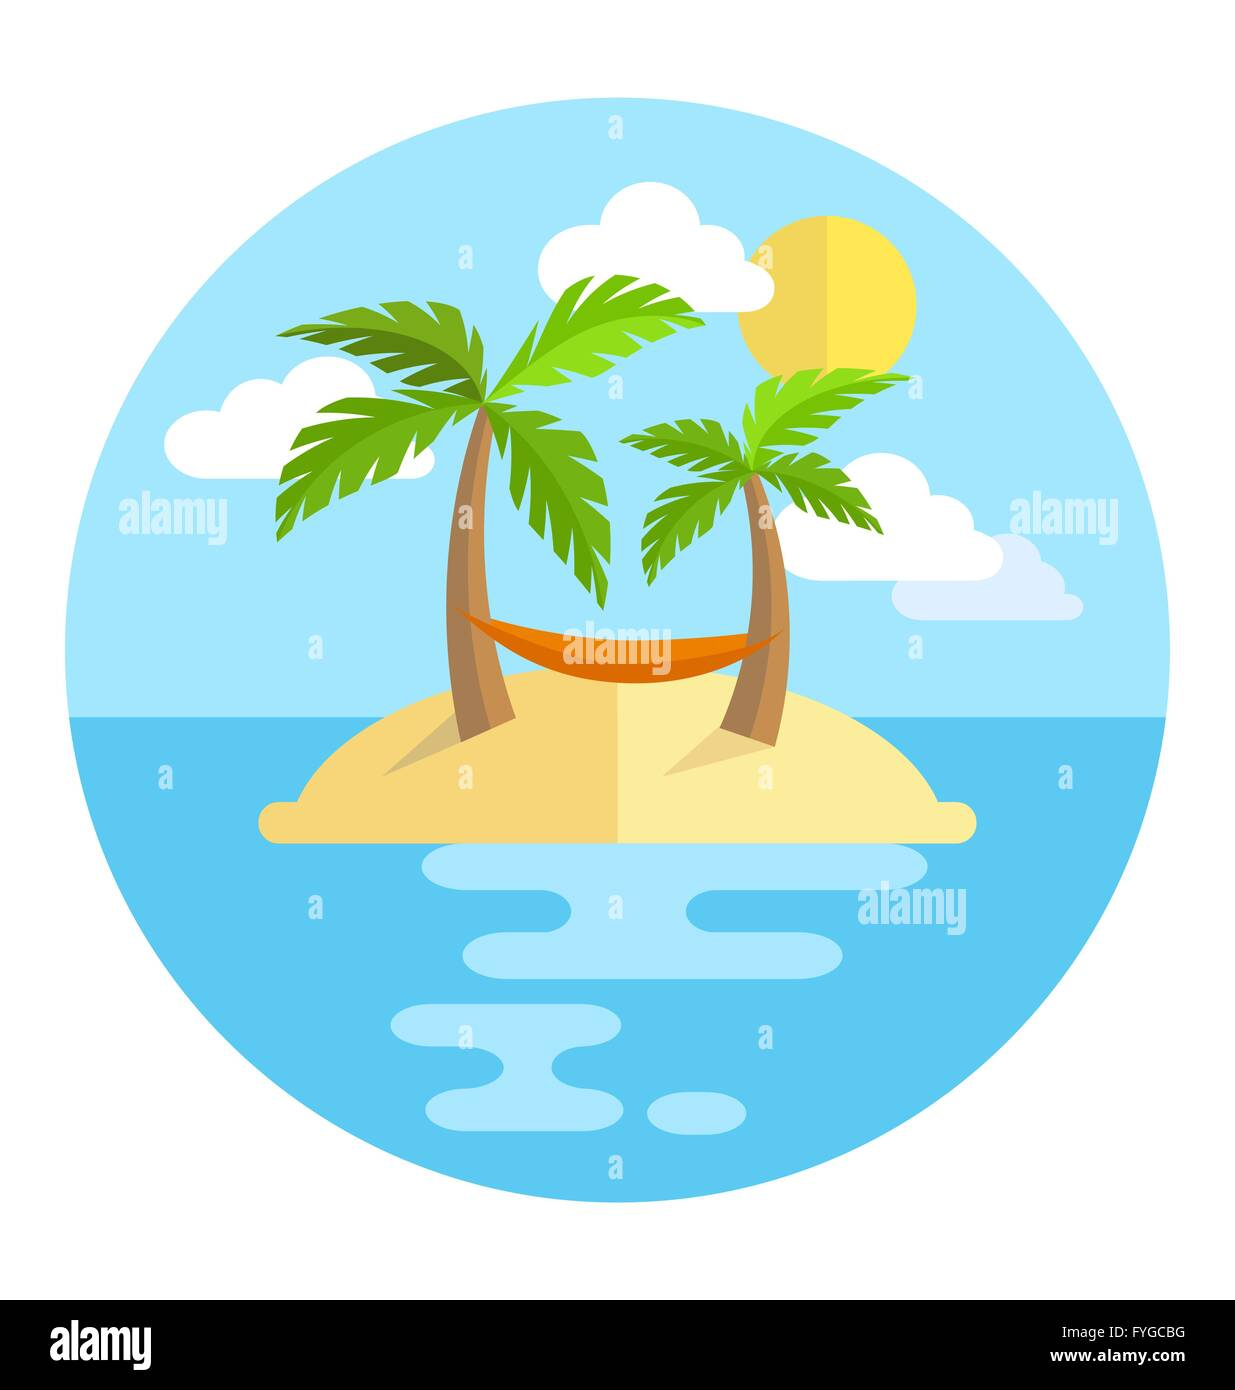 summer vacation circle icon island with palms sun and hammock is summer vacation circle icon island with palms sun and hammock is      rh   alamy